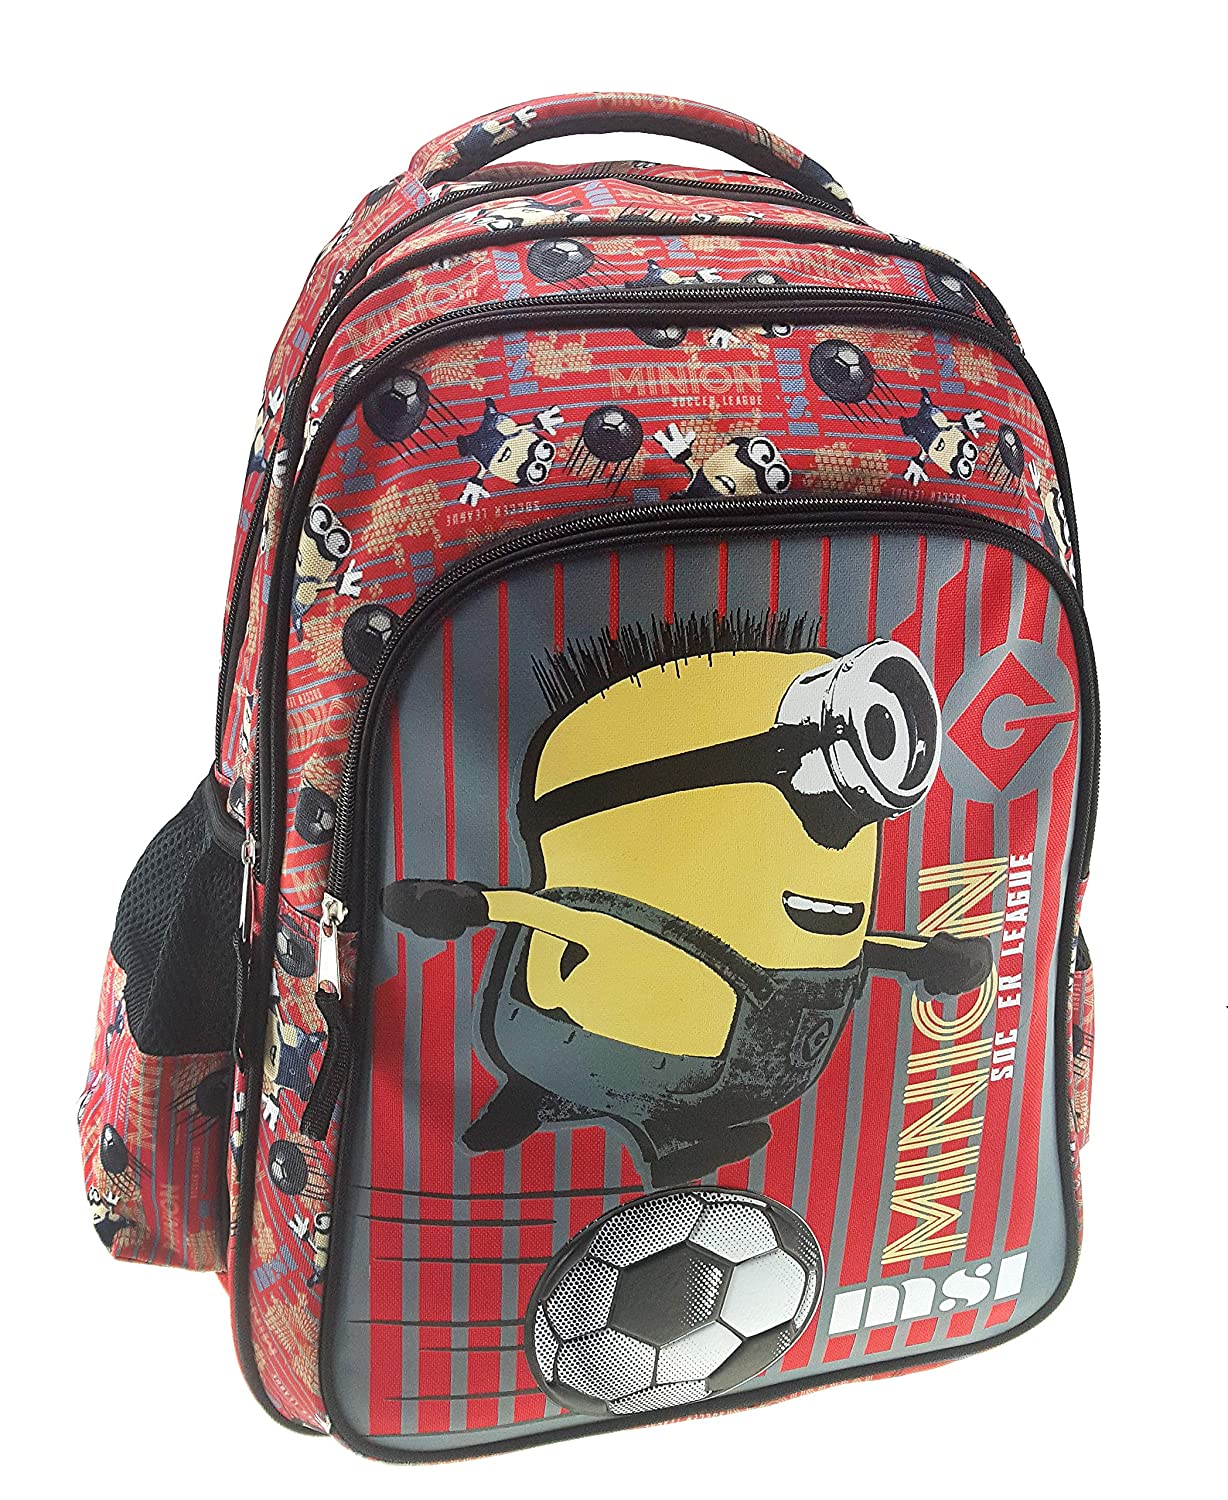 44 cm Graffiti Despicable Me Minions Mochila Escolar